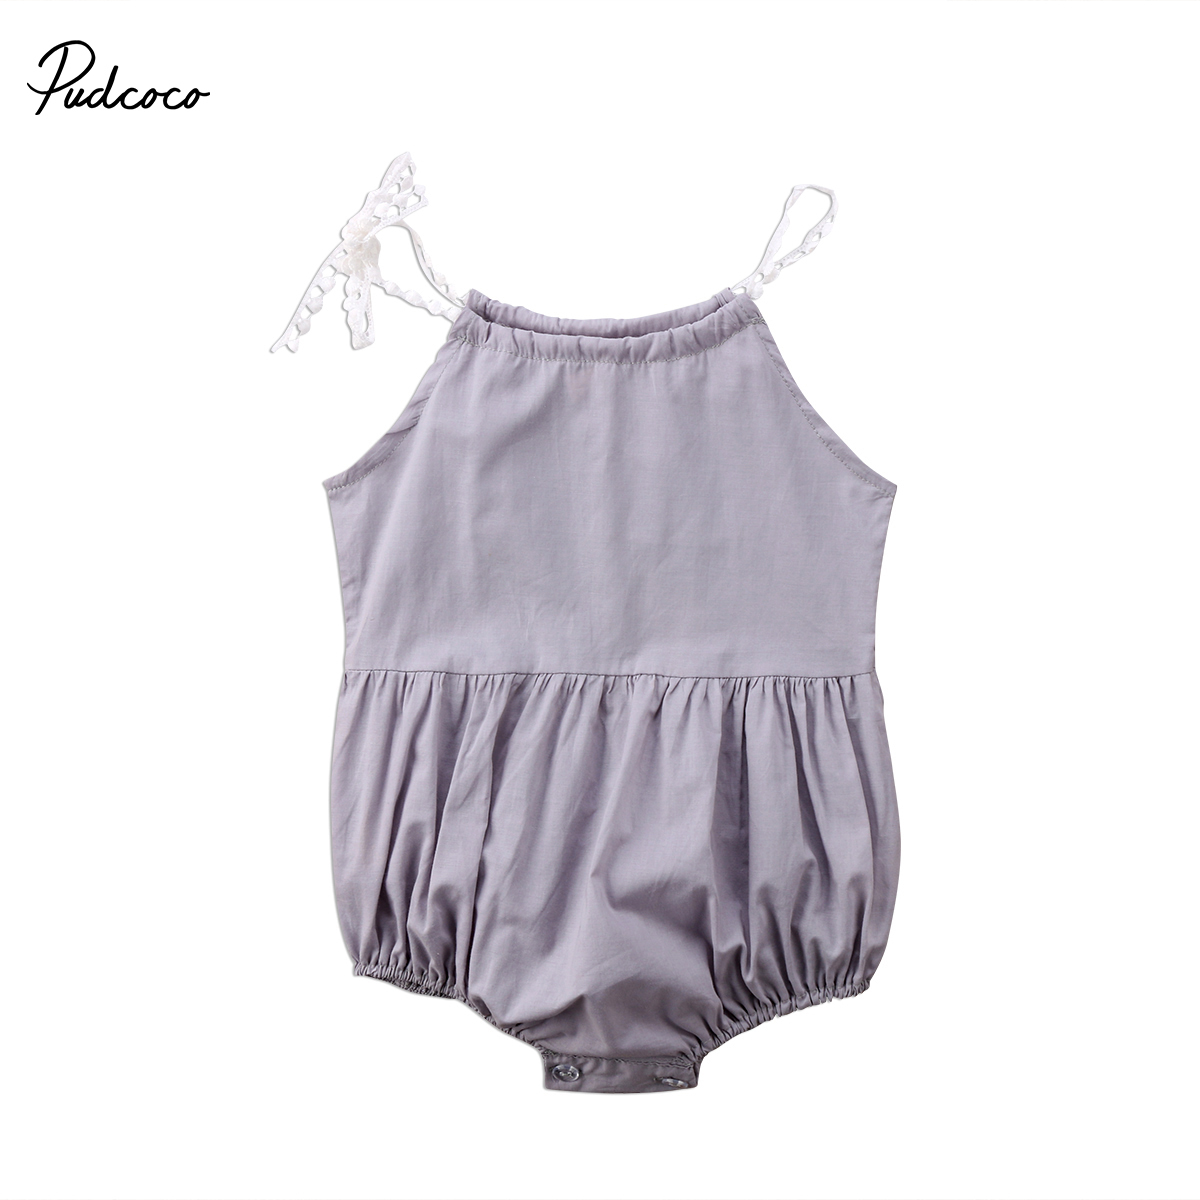 Primary image for Pudcoco Cute Newborn Summer Romper Kids Baby Girl Strap Romper Solid Sleeveless